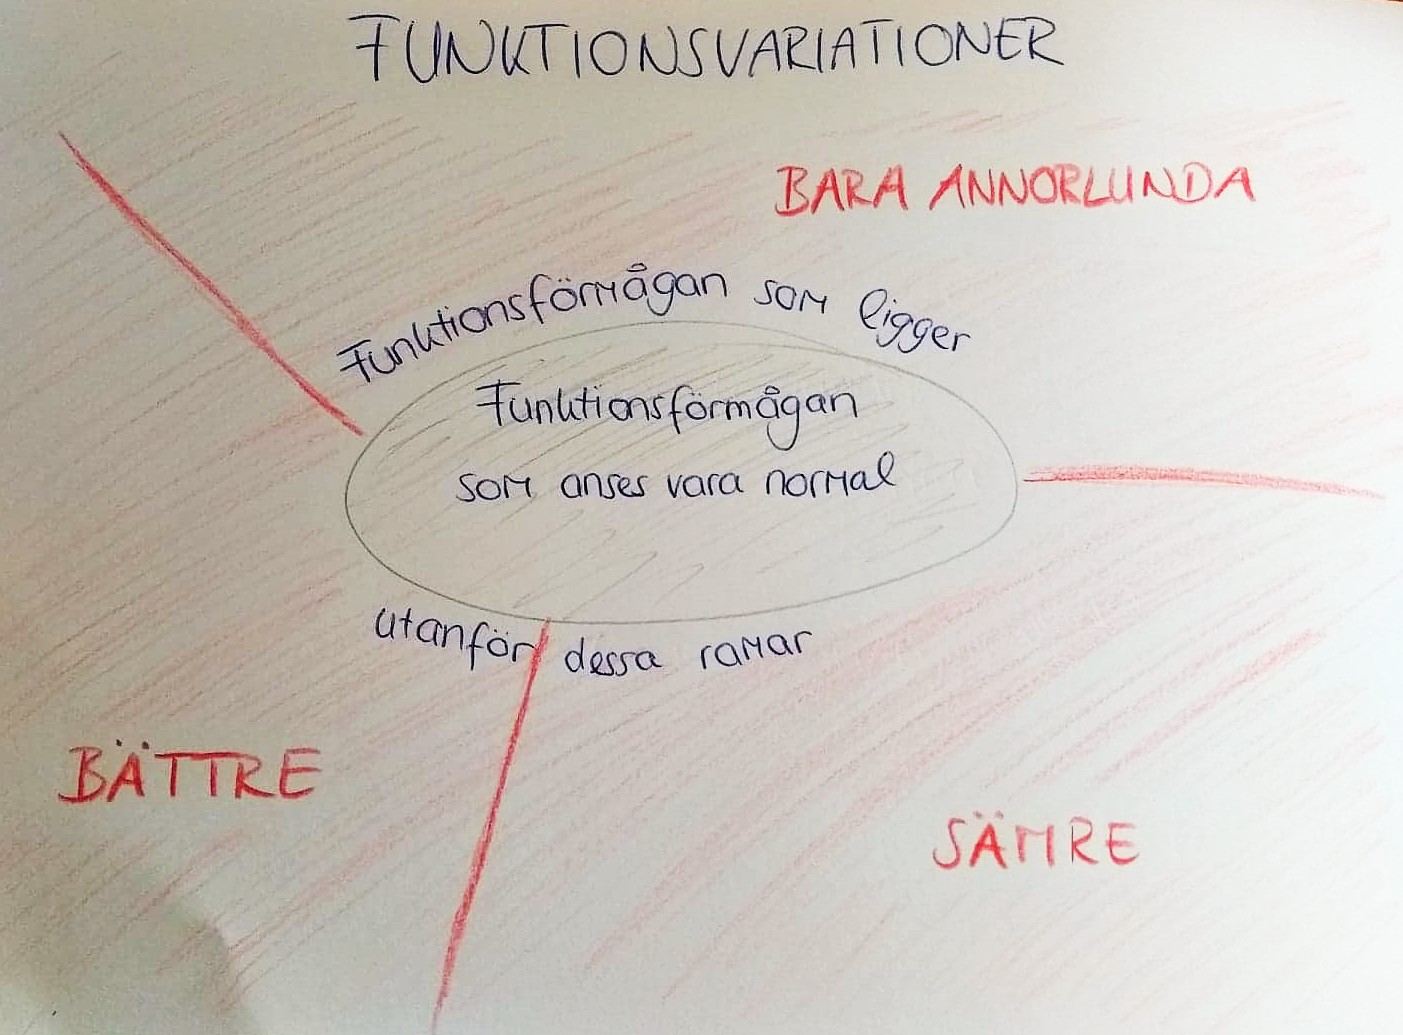 Illustration som tydliggör begreppet funktionsvariation